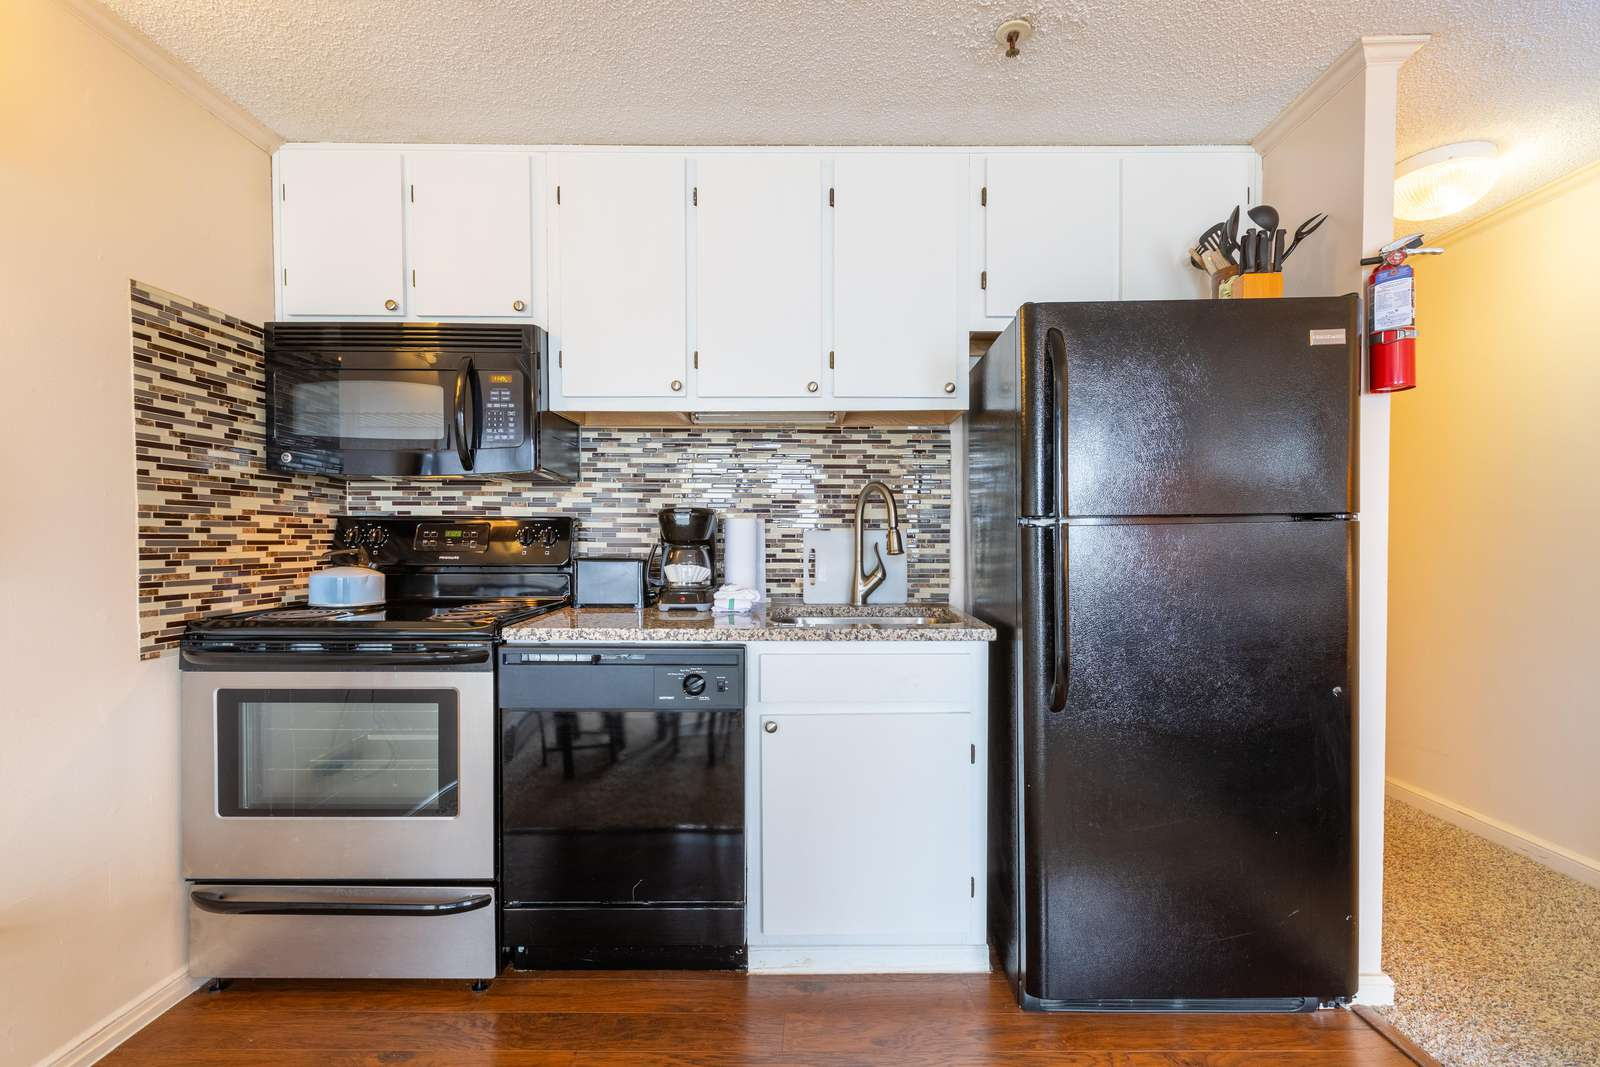 Updated Kitchen and Equipment to prepare your meals